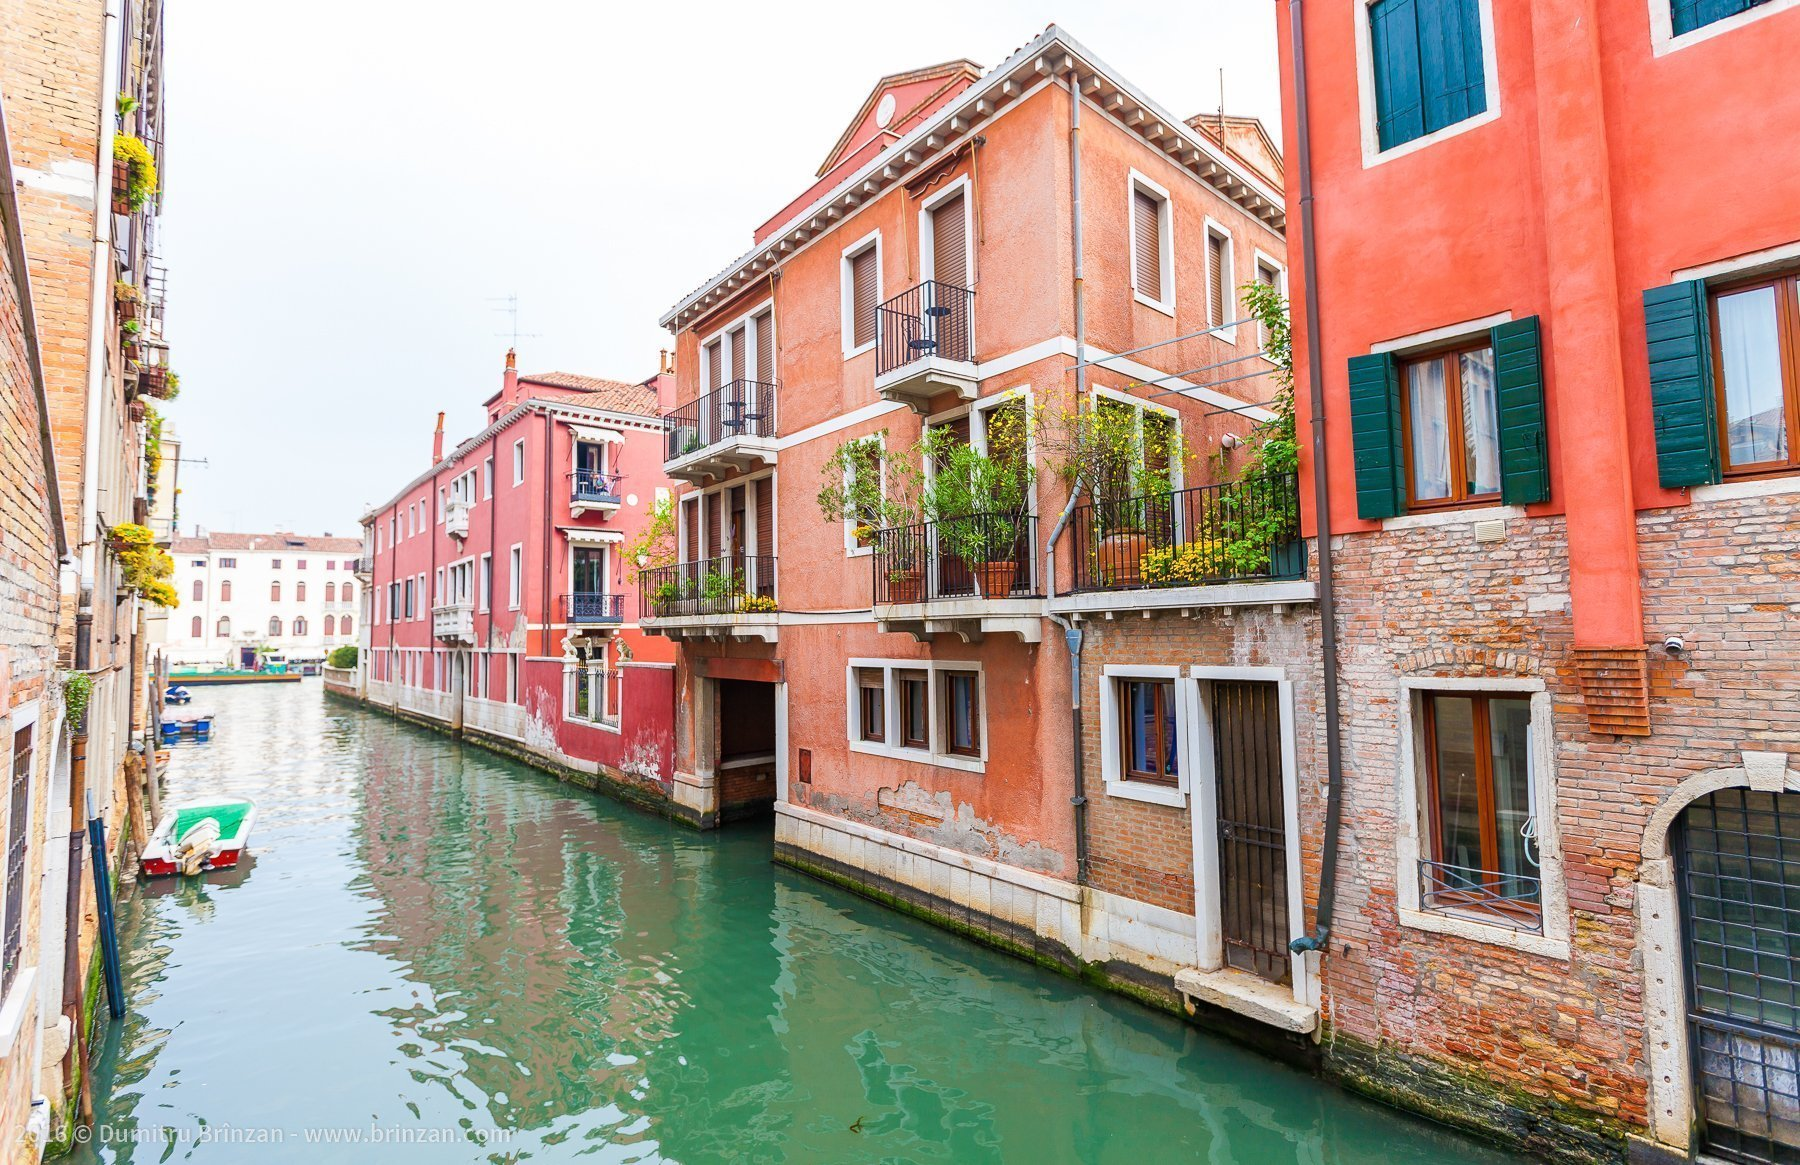 In Venice there are only flower pots - no trees, no grass.